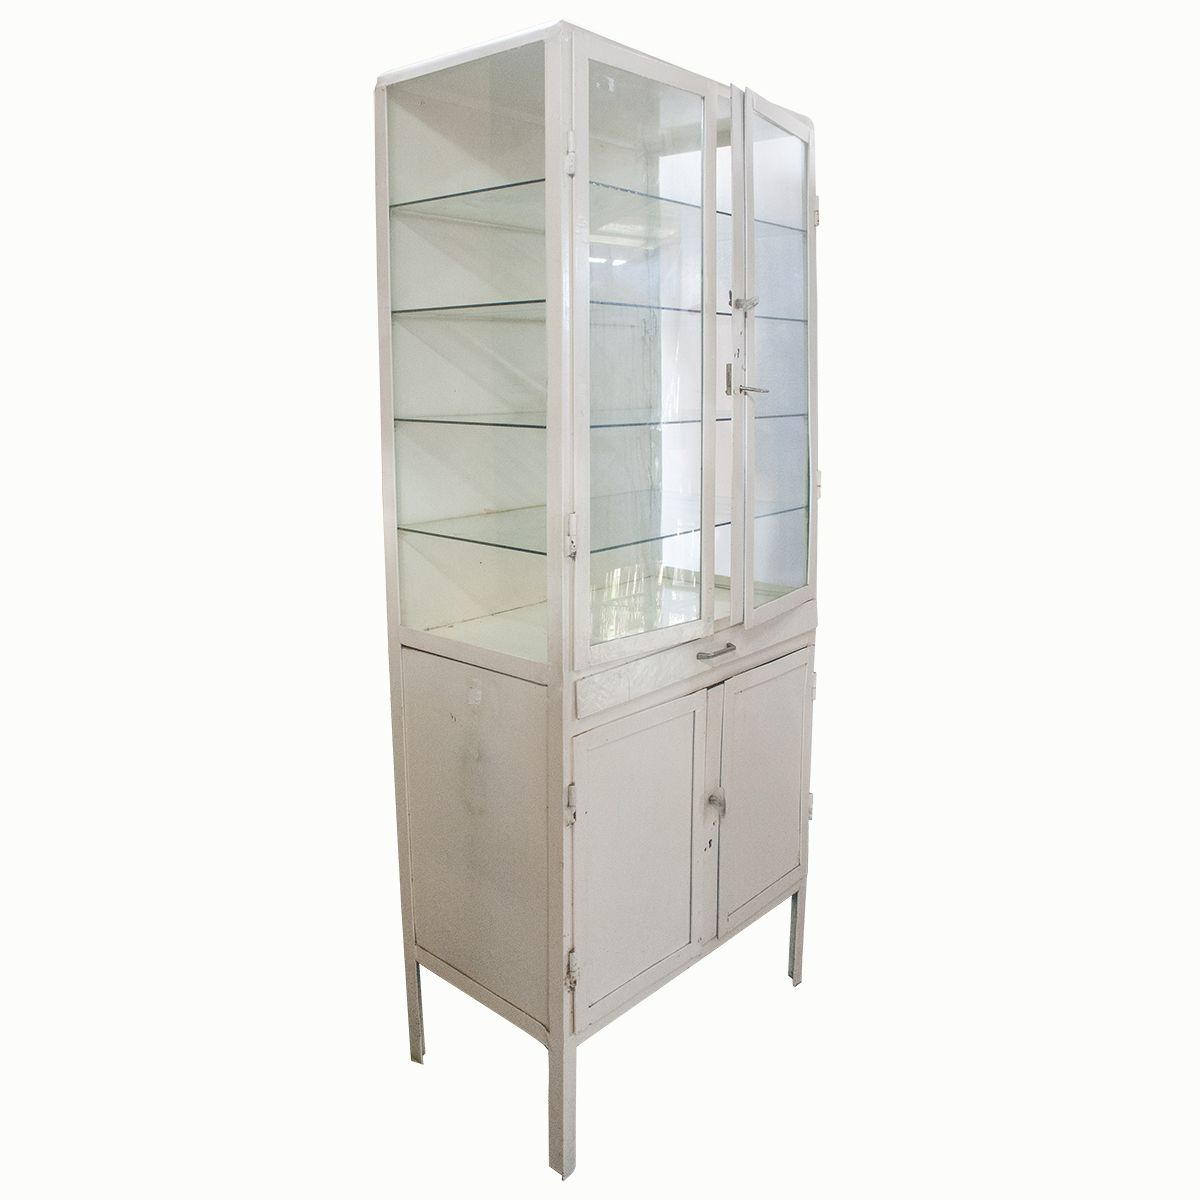 Vitrine Stahl White Metal Hospital Closet Hospitalcloset Whitemetalcloset